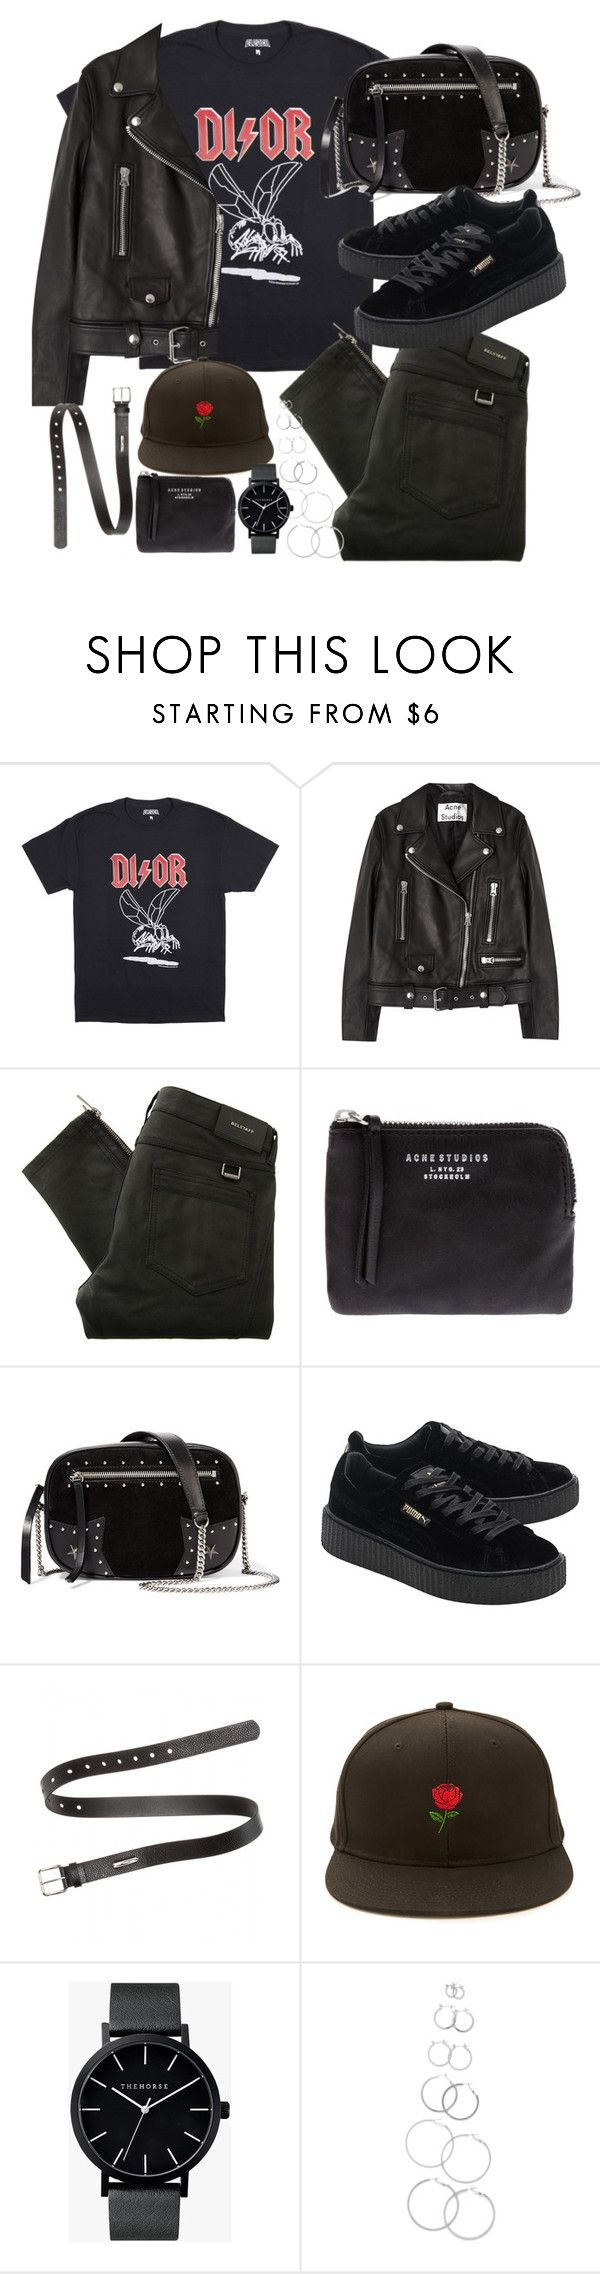 """""""outfit with a dior tee and puma creepers"""" by ferned on Polyvore featuring Acne Studios, Belstaff, Karl Lagerfeld, Puma, Forever 21 and The Horse"""